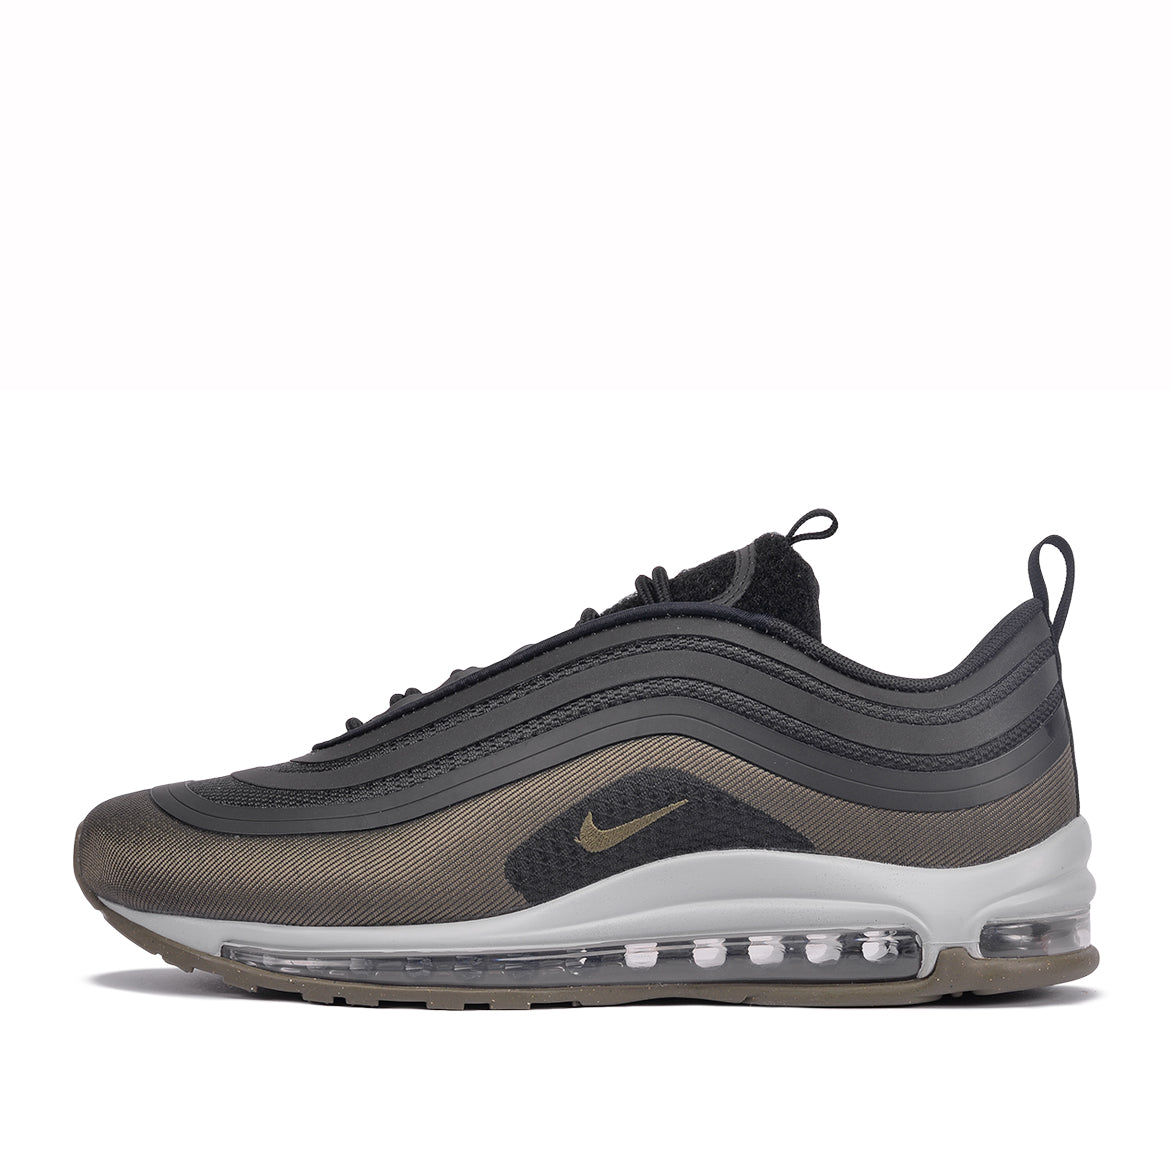 best loved 97788 fc0d7 cheap nike air air air max 97 ultra ul 17 hal black dark hazel medium olive  2db62 80b32; switzerland air max 97 ultra 17 hal black medium olive 25418  11472